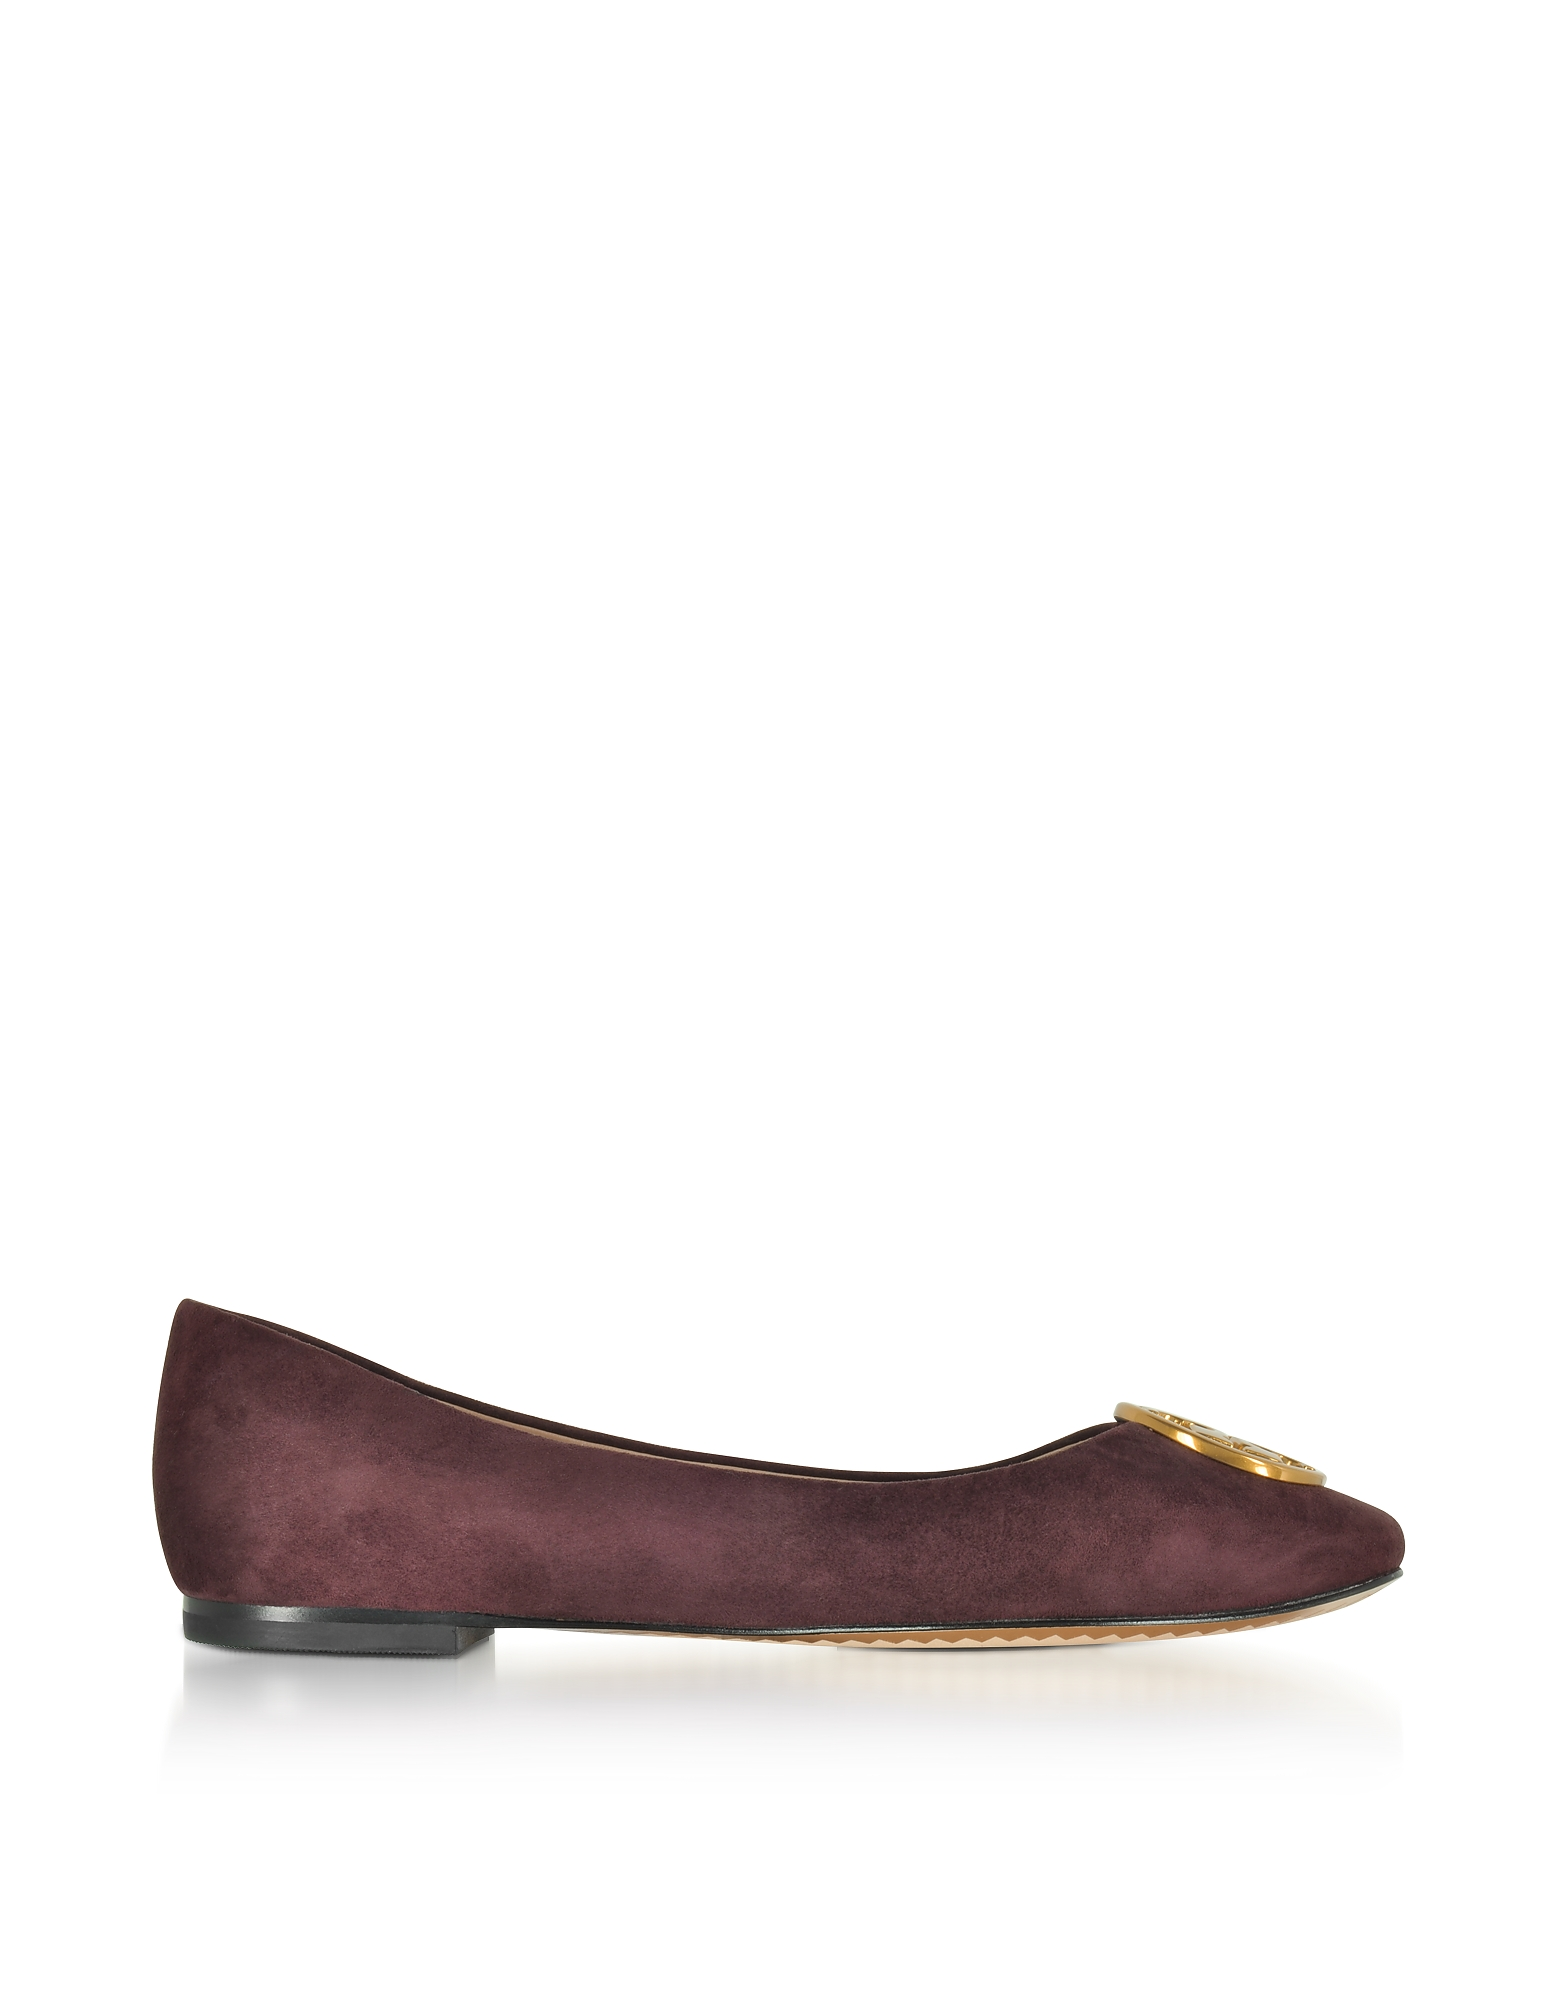 Tory Burch Shoes, Chelsea Maroon Suede Ballet Flats